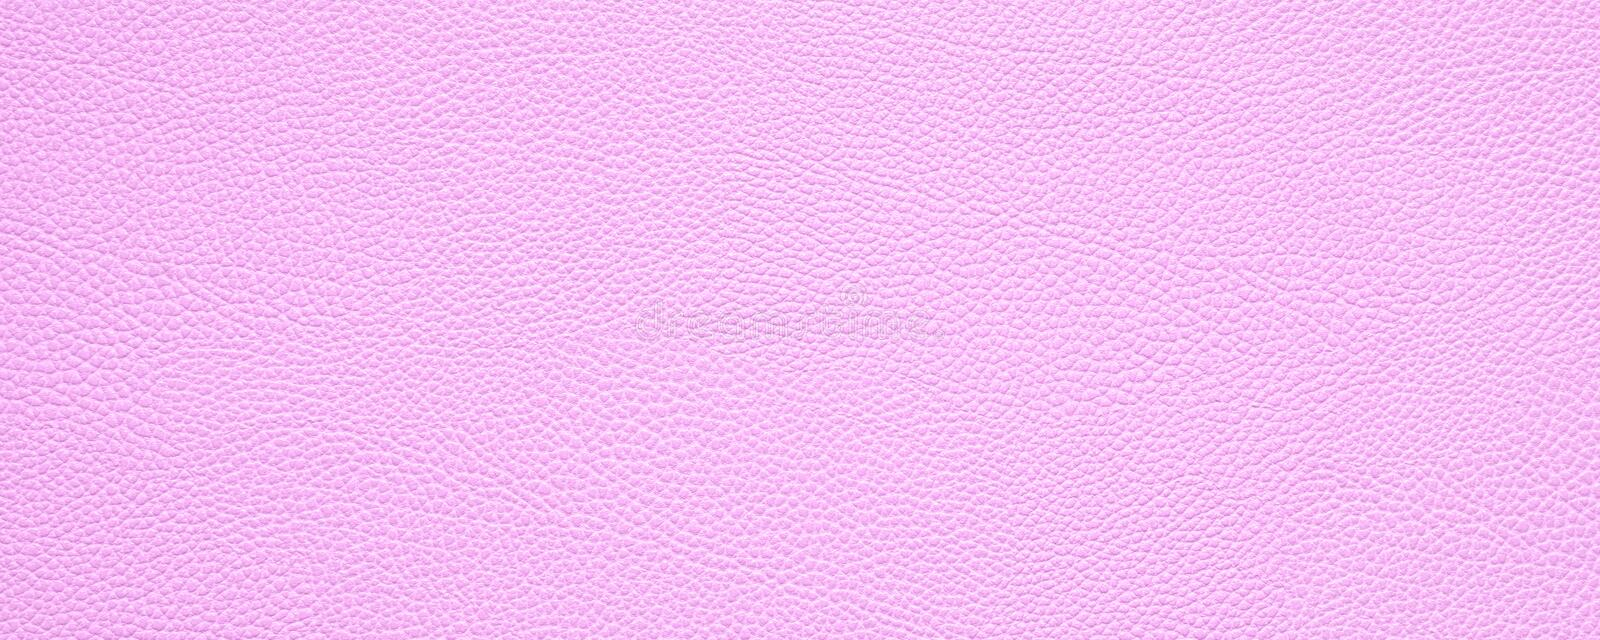 Blank pink leather texture background banner with copy space vector illustration